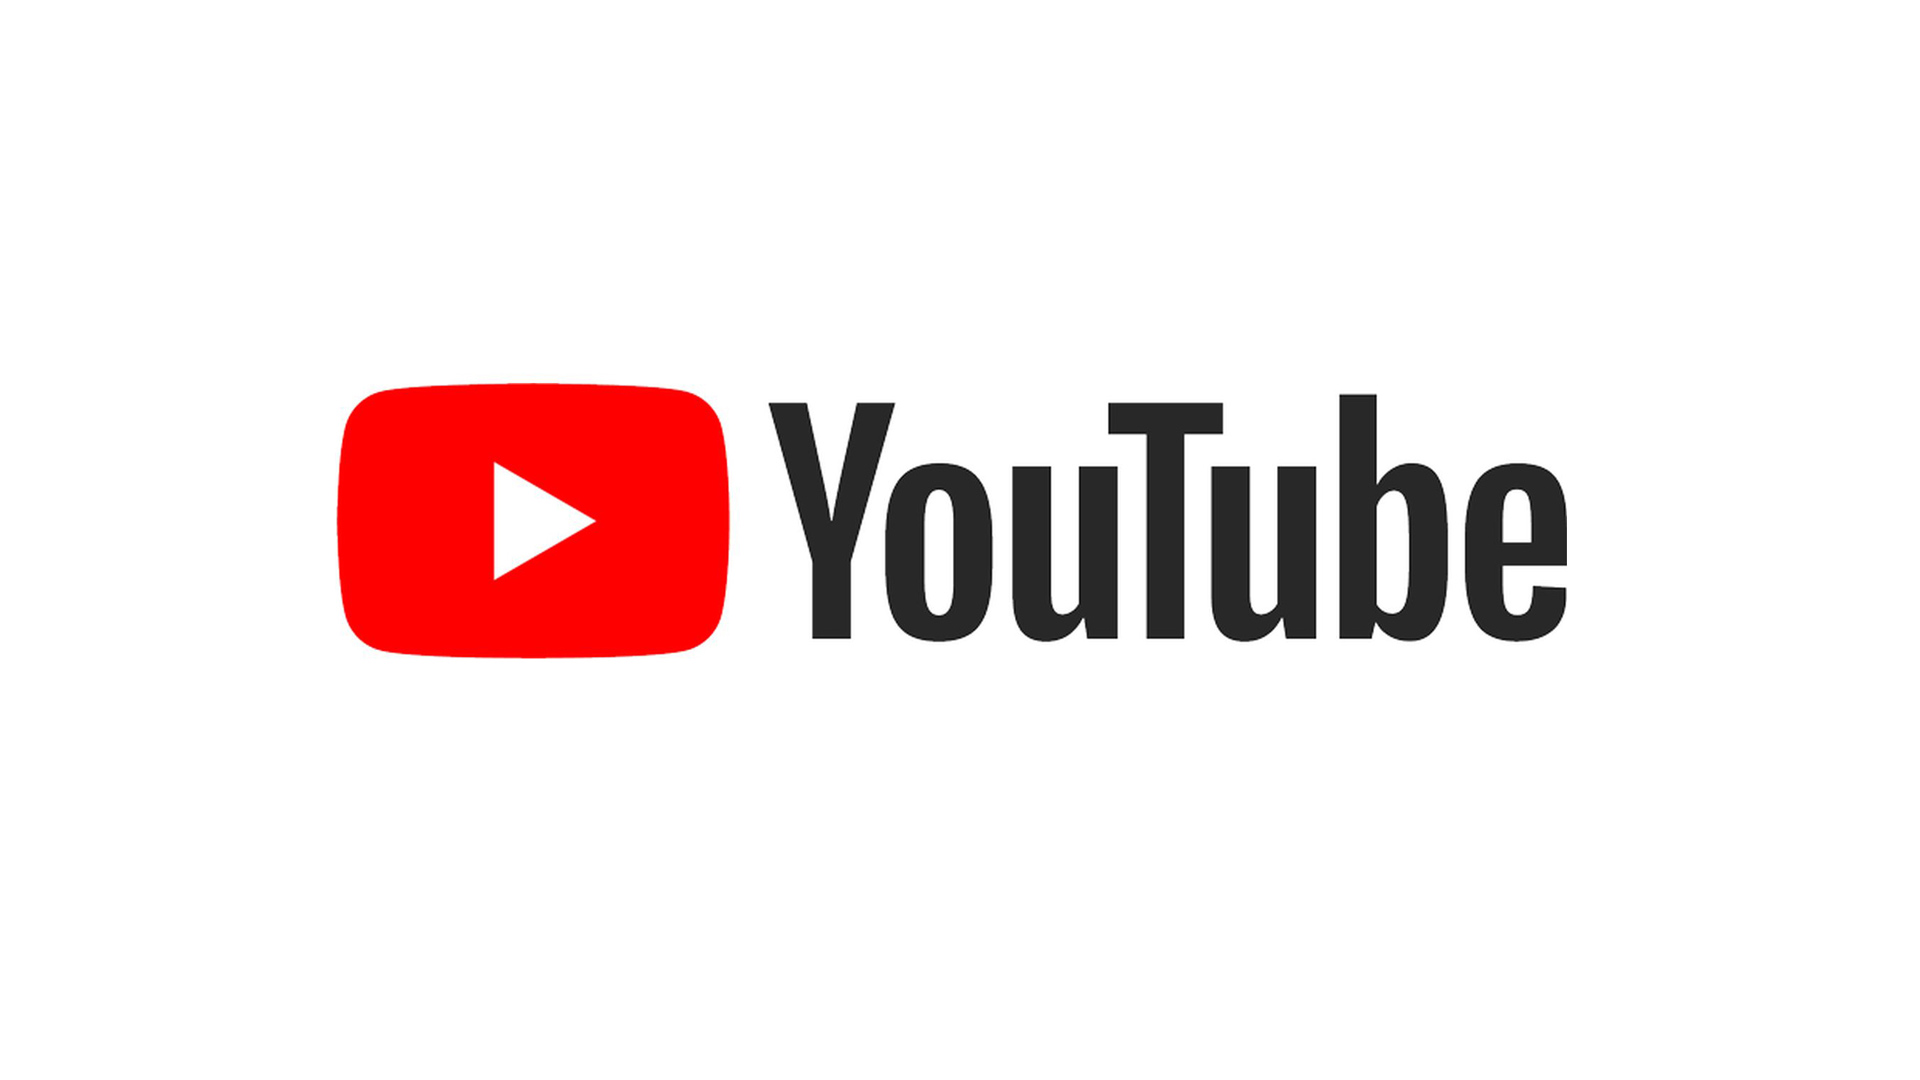 new-youtube-logo16-9